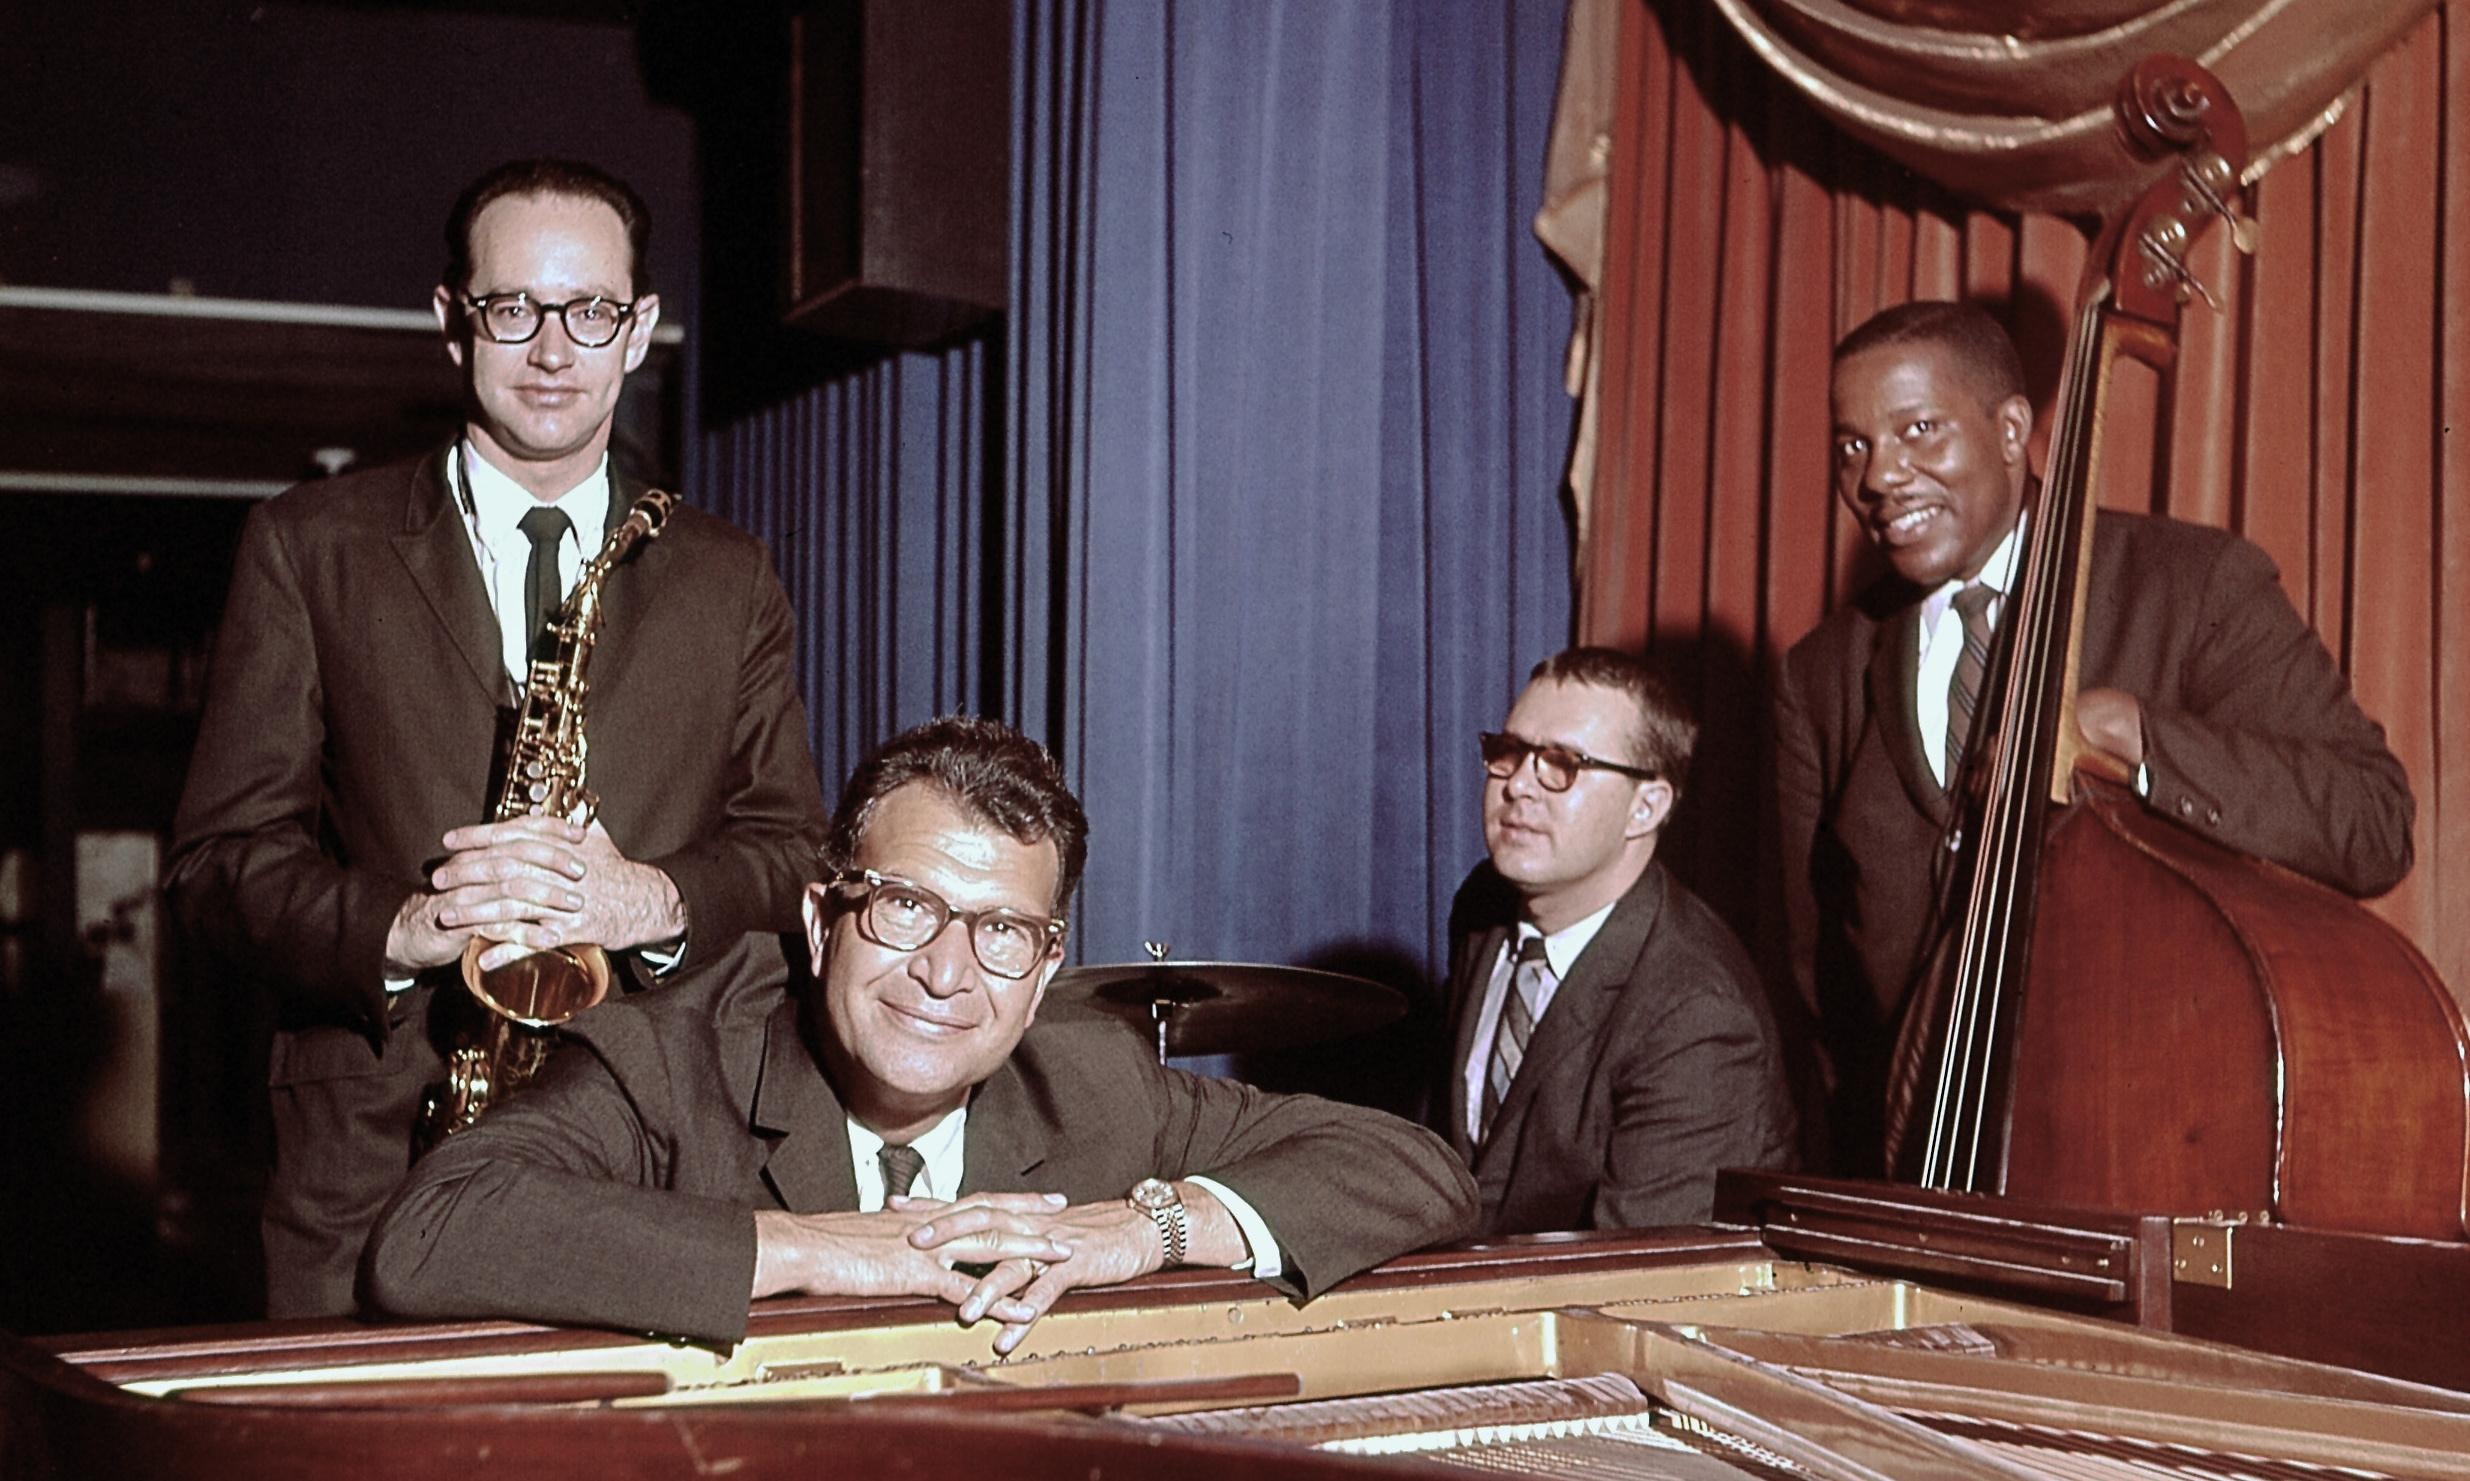 Take one: lost Dave Brubeck tapes reveal jazz hit originally sounded like 'a bad student band'